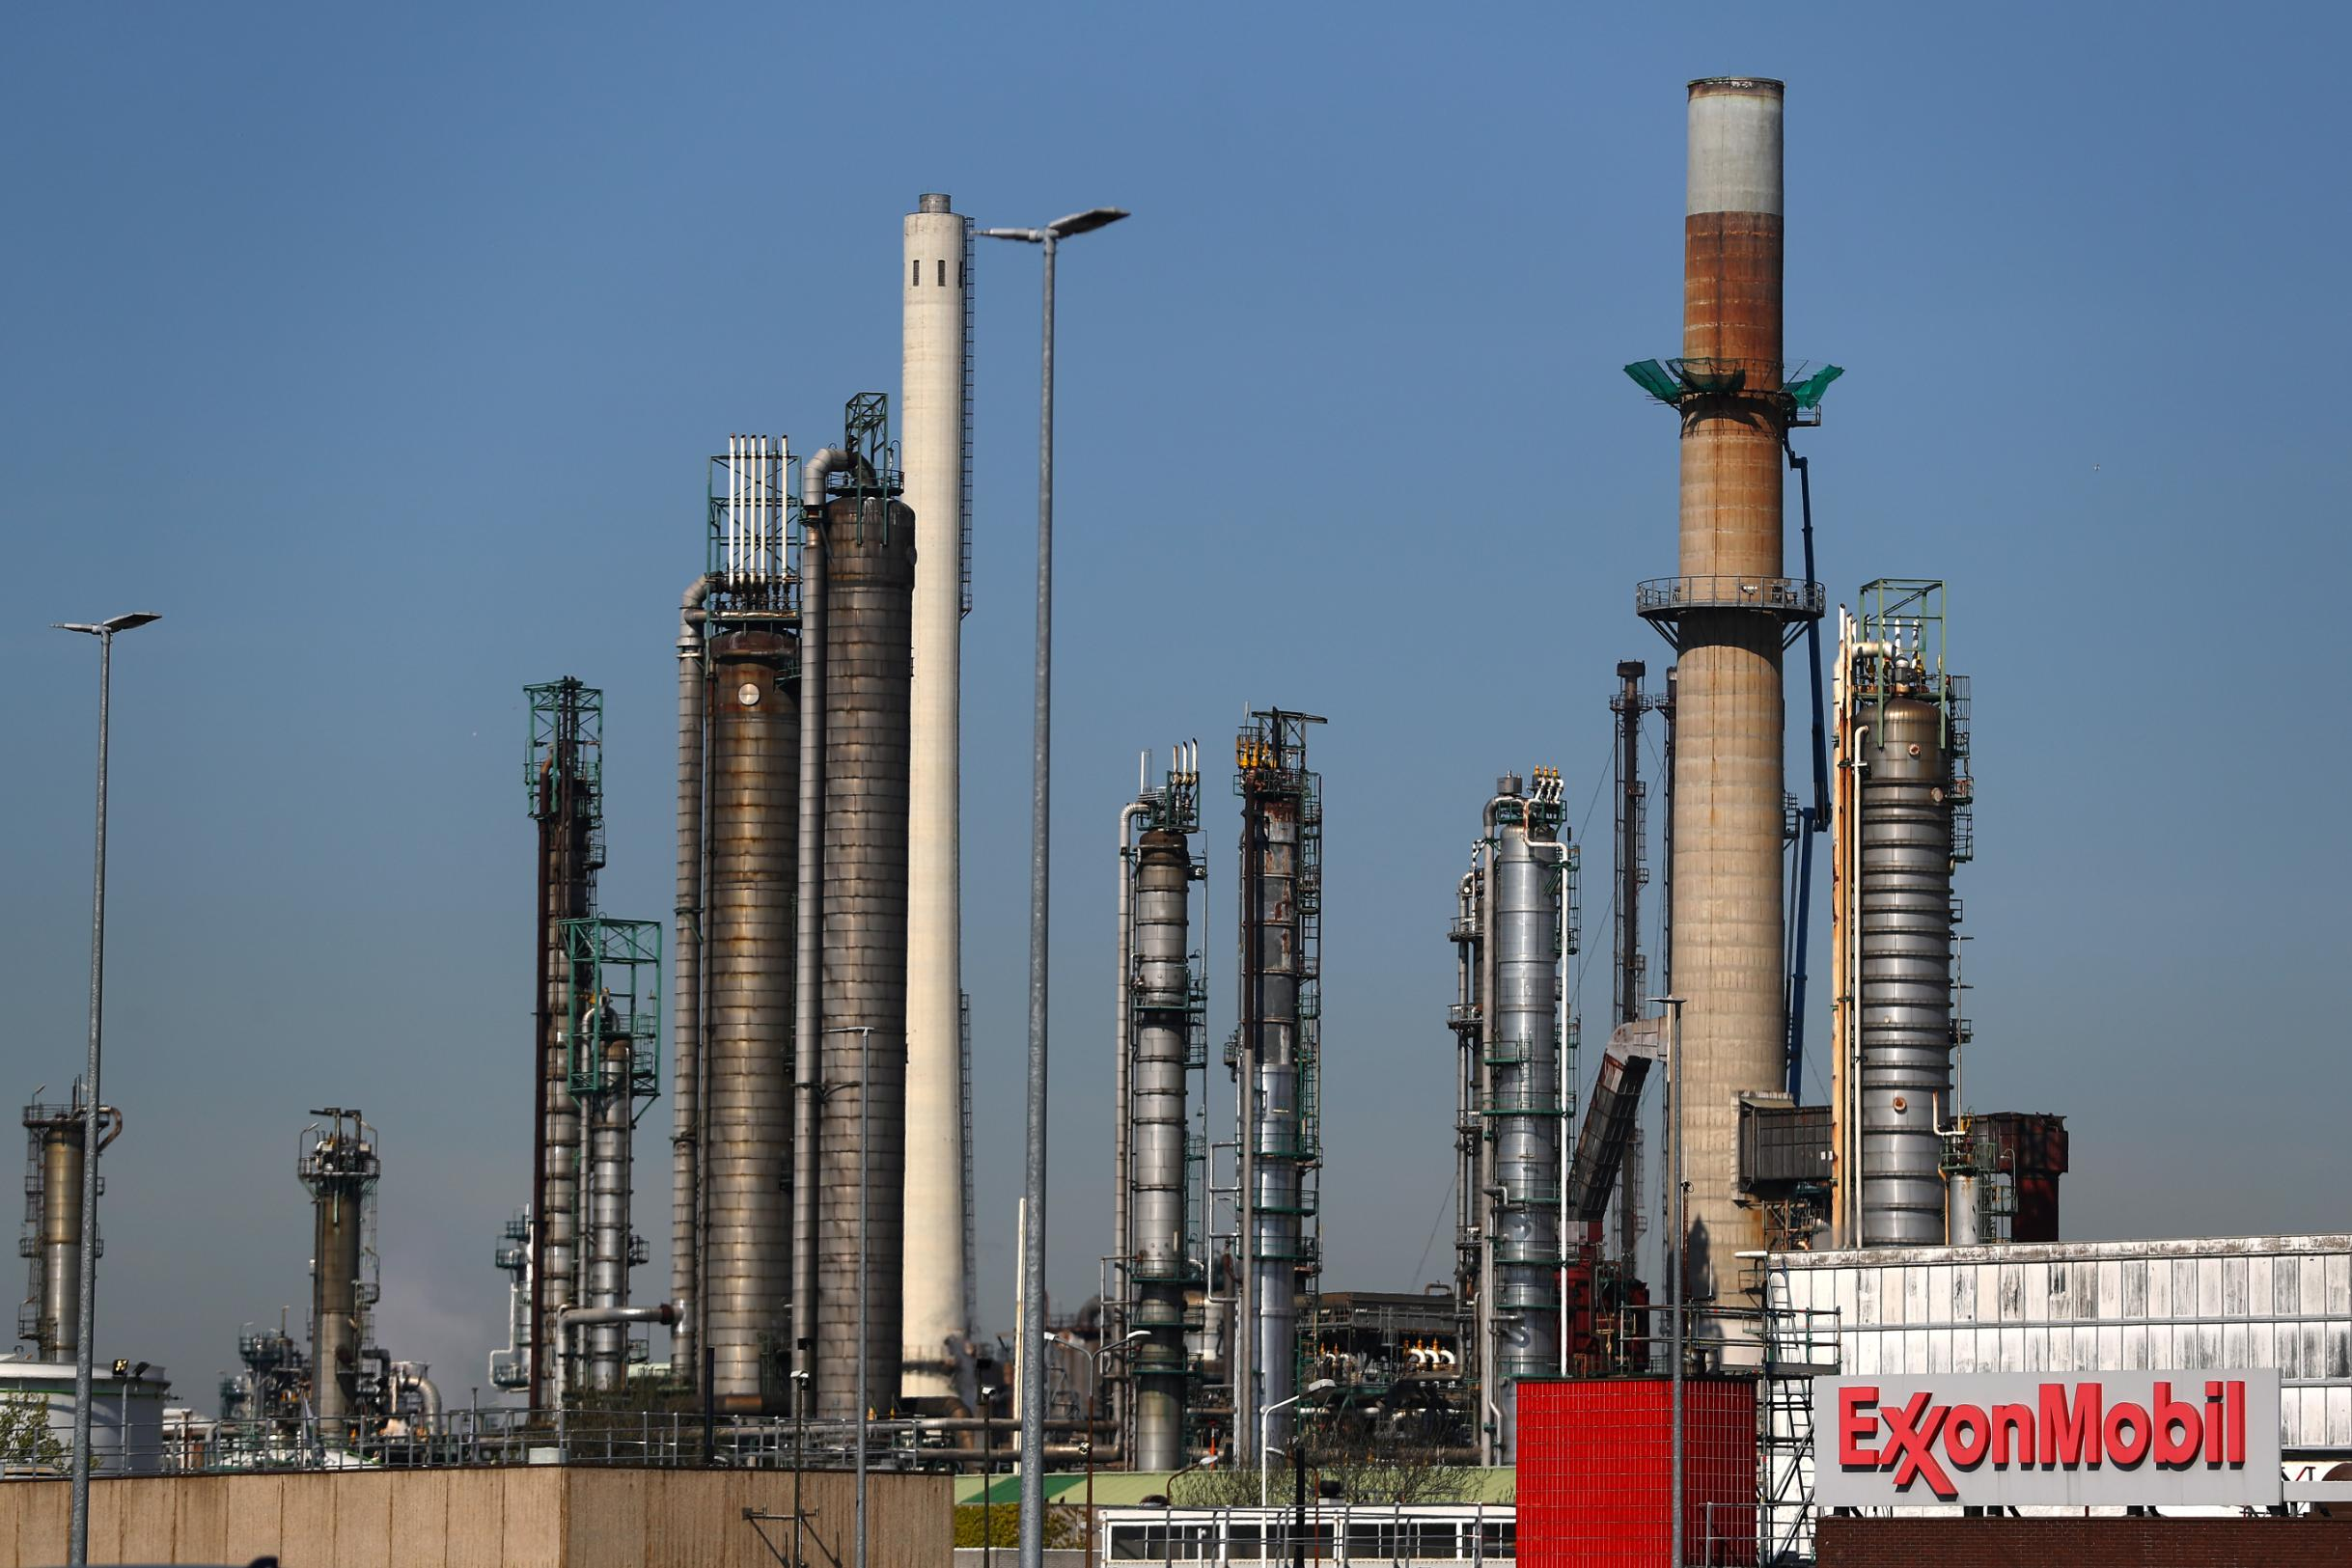 Exxon's exit means there's just one oil company left in the Dow